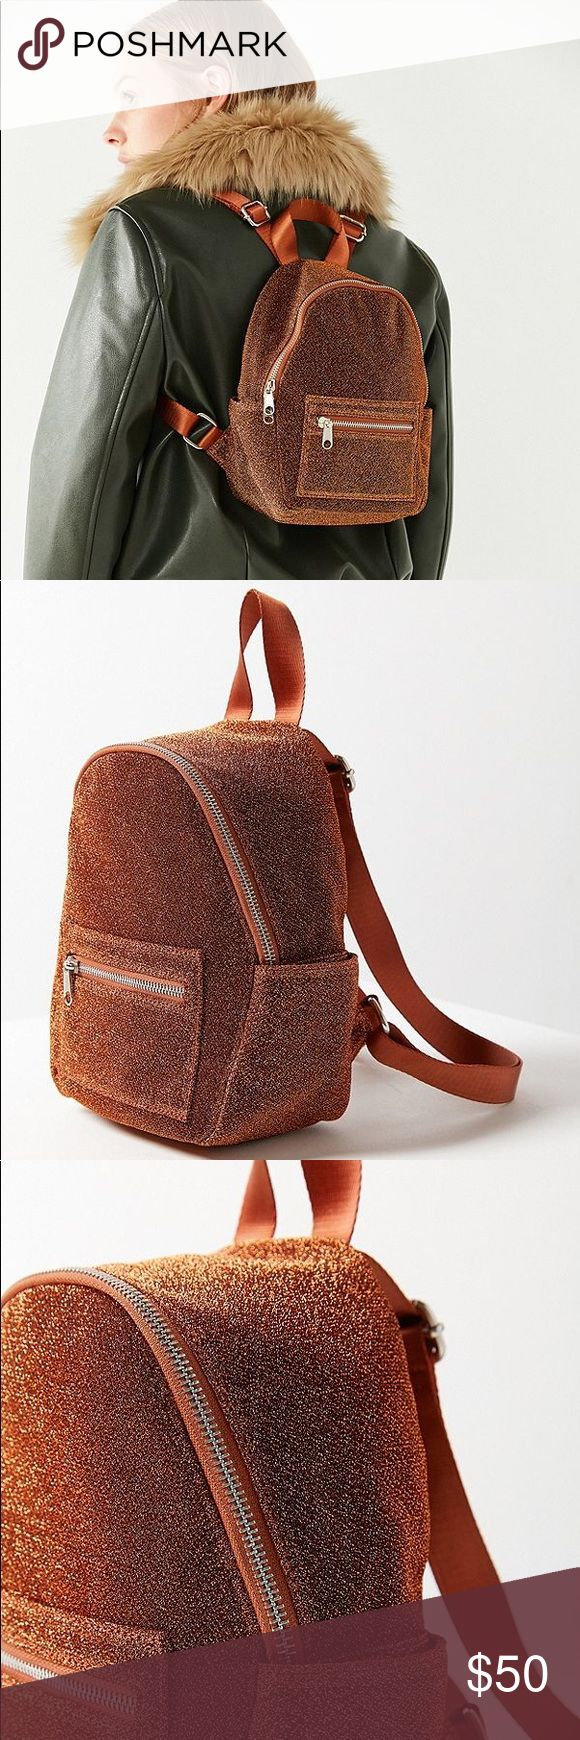 """Glitter classic mini backpack purse rust orange Life's a party so you might as well accessorize accordingly with this glittery mini backpack we're so obsessed with. Kitschy-cute zip-around silhouette with zippered pocket and pouch pockets at sides and front for easy access to your sunglasses + phone. Finished with adjustable shoulder straps and a top carrying handle.  Content + Care - Spot clean   Size - Length: 7.5"""" - Width: 4.5"""" - Height: 10"""" - Handle drop: 4"""" 1.25 Bags"""